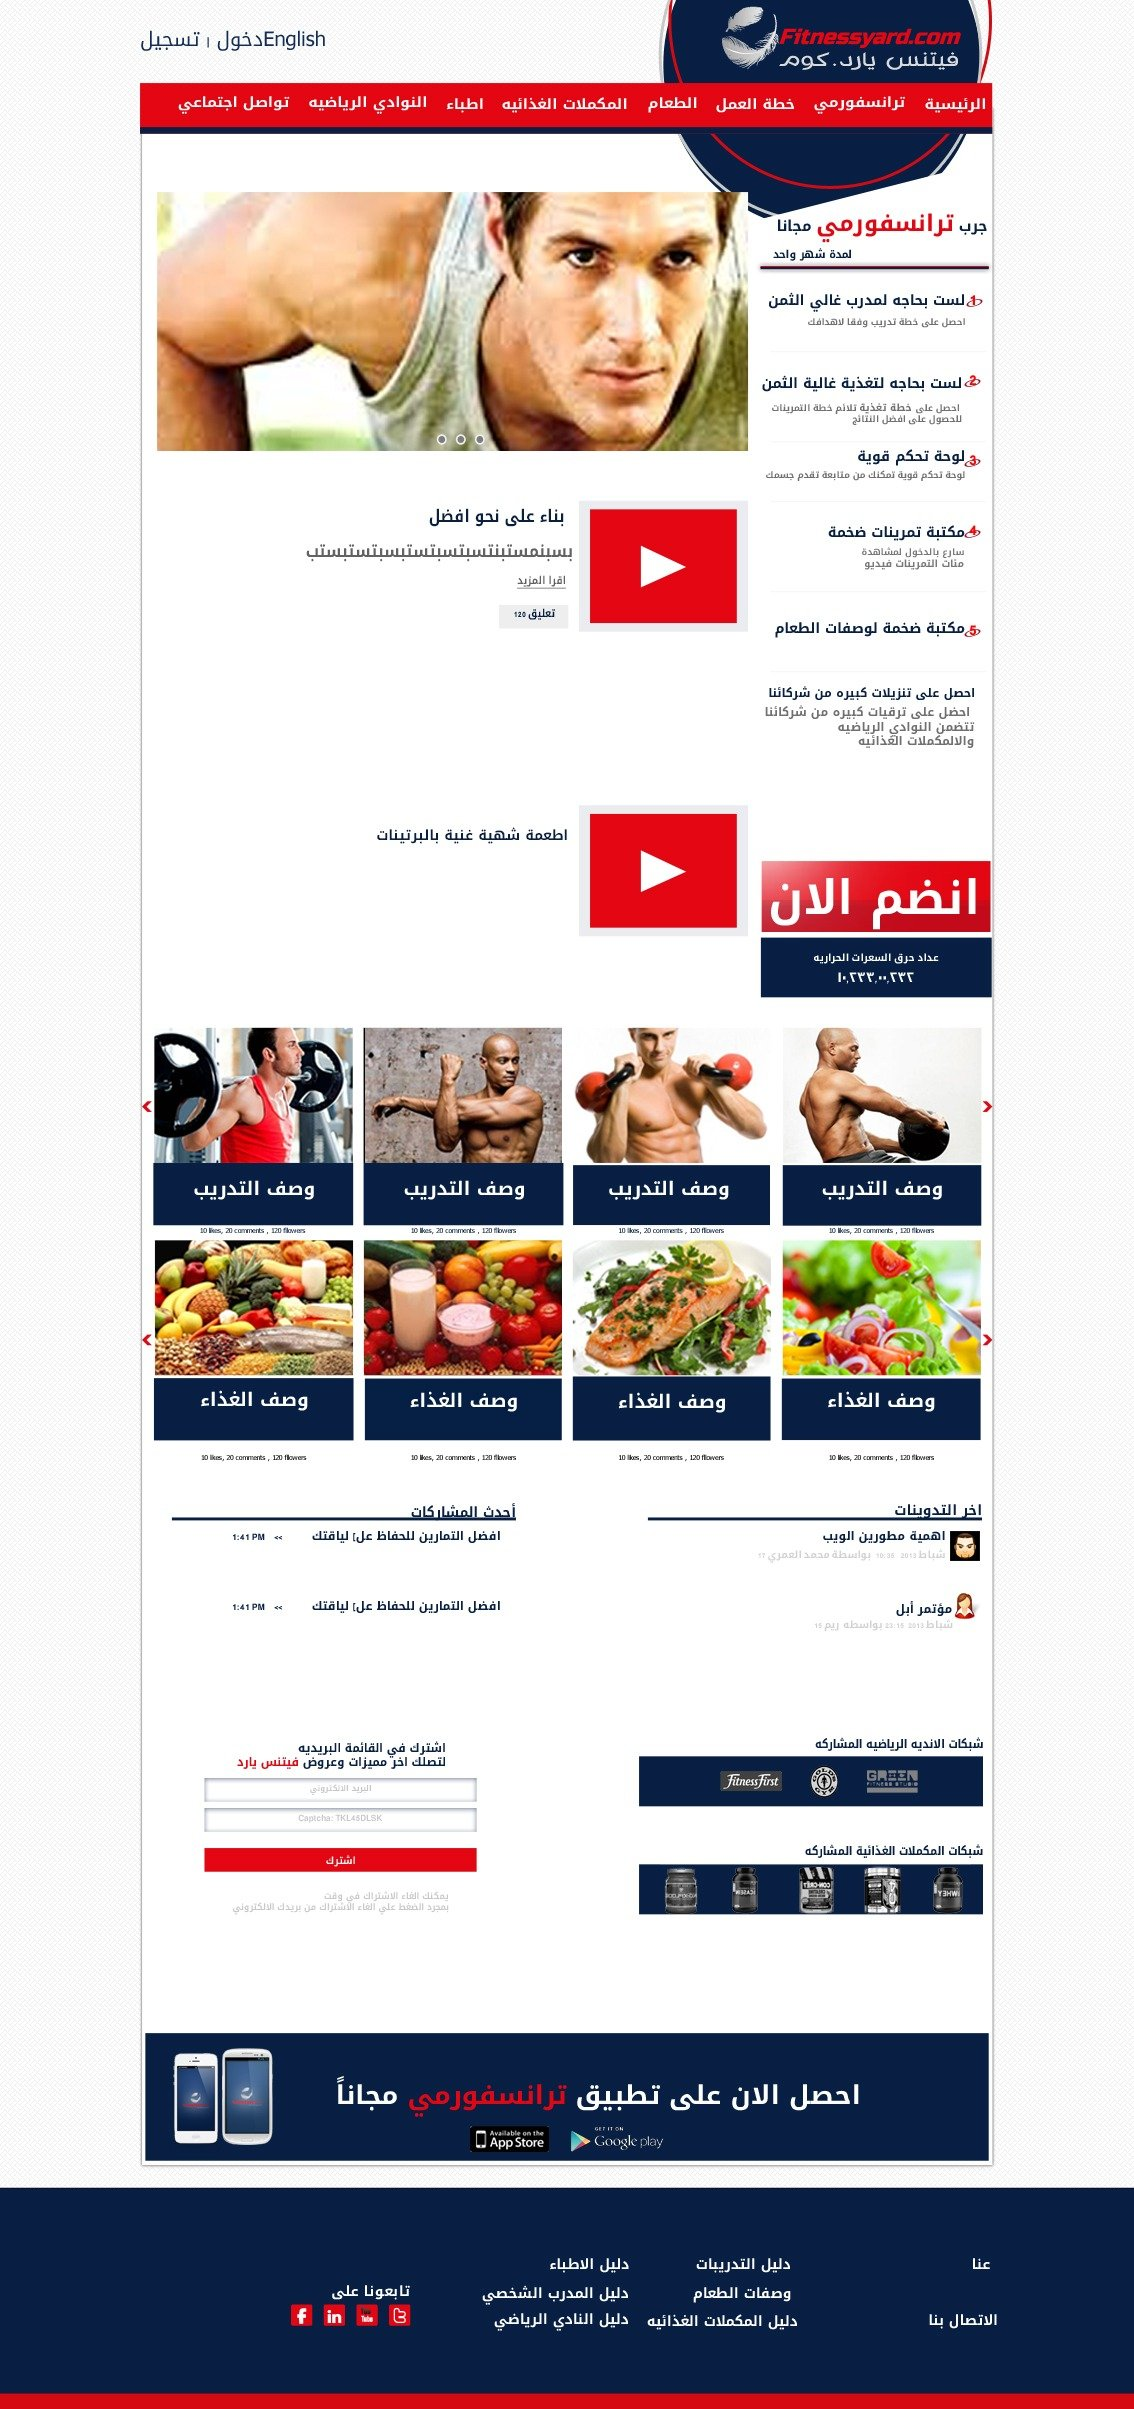 fitnessyard arabic website blue edition 2